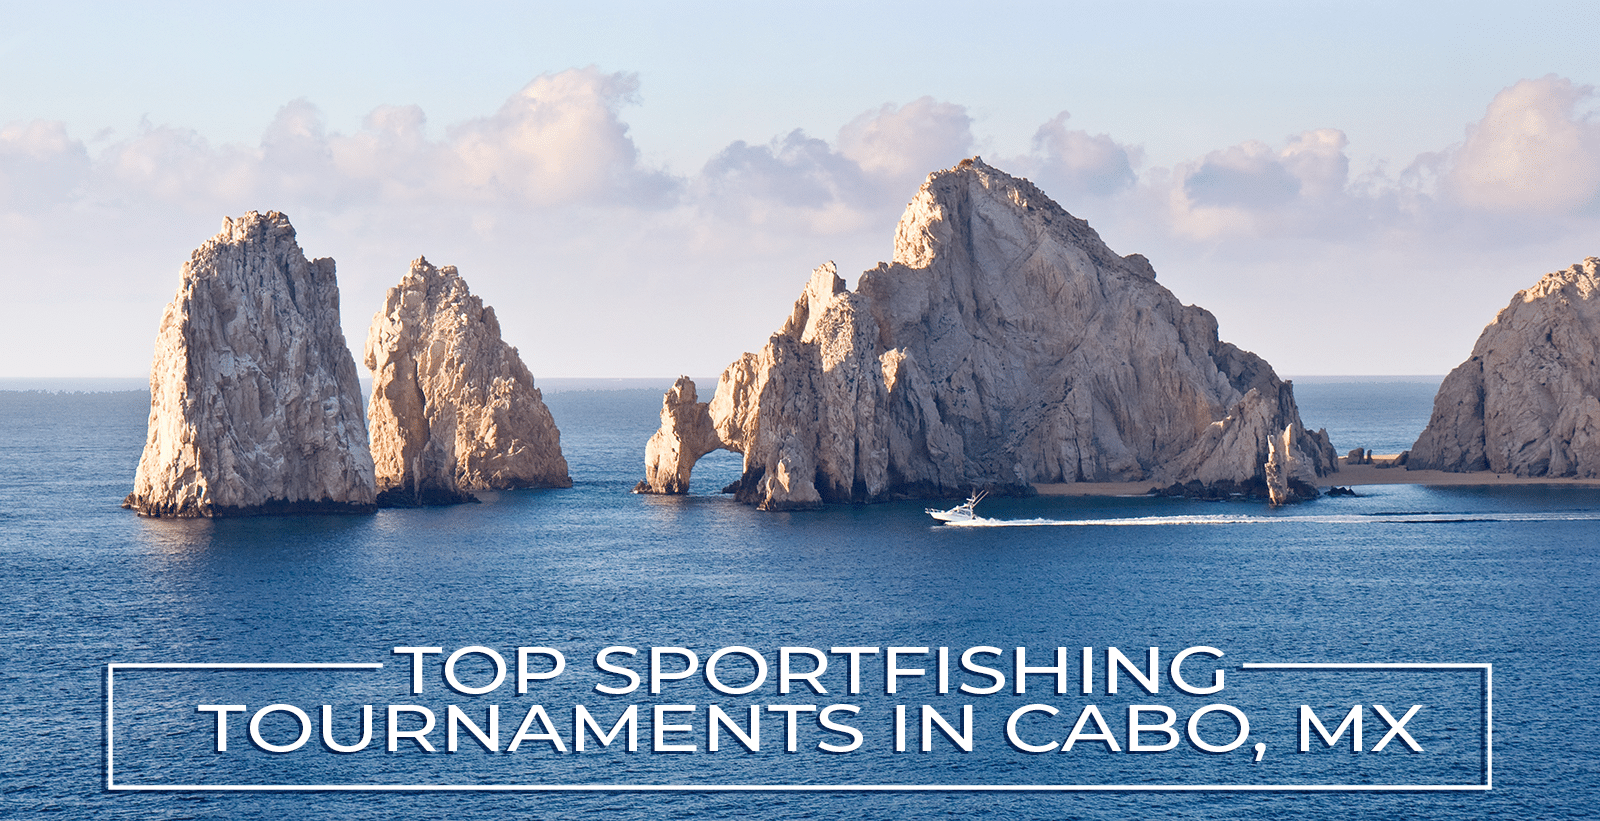 Sportfishing Tournament in Cabo, MX